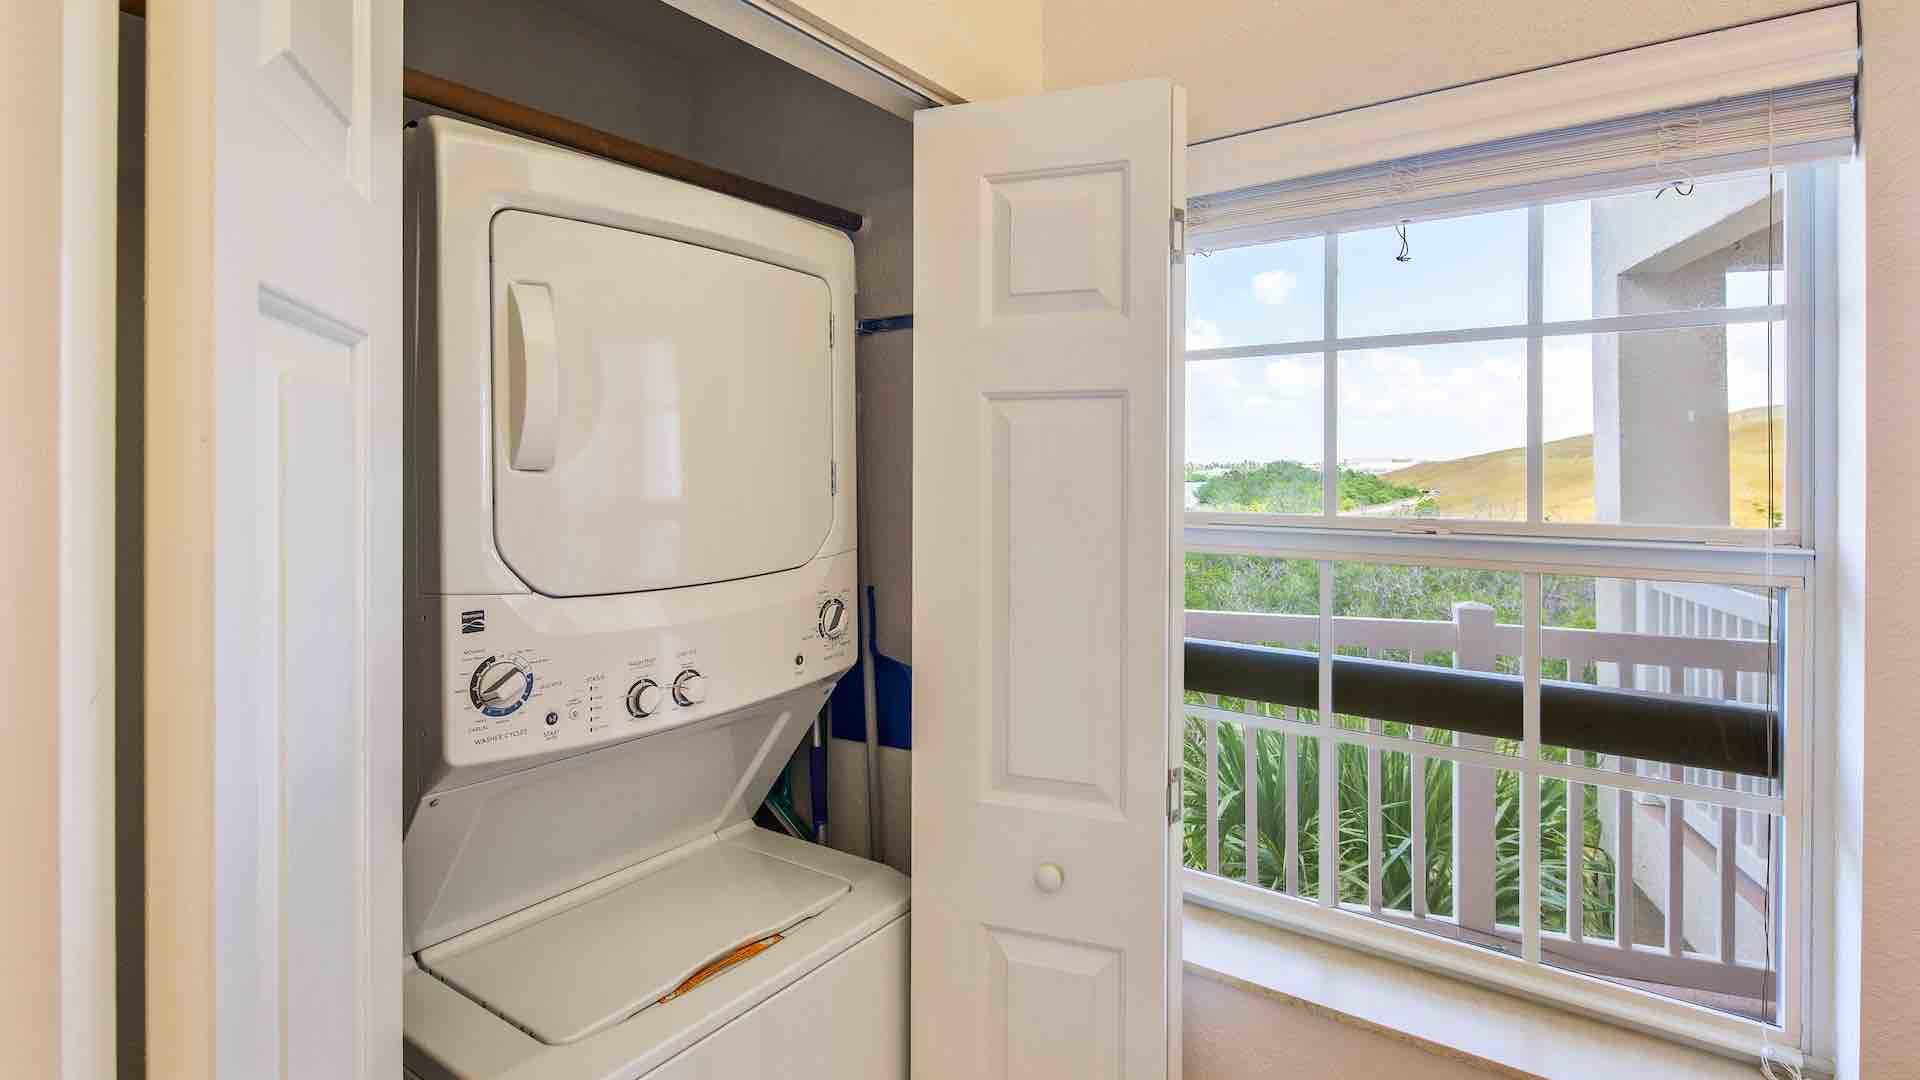 The condo has a convenient stacked washer and dryer...